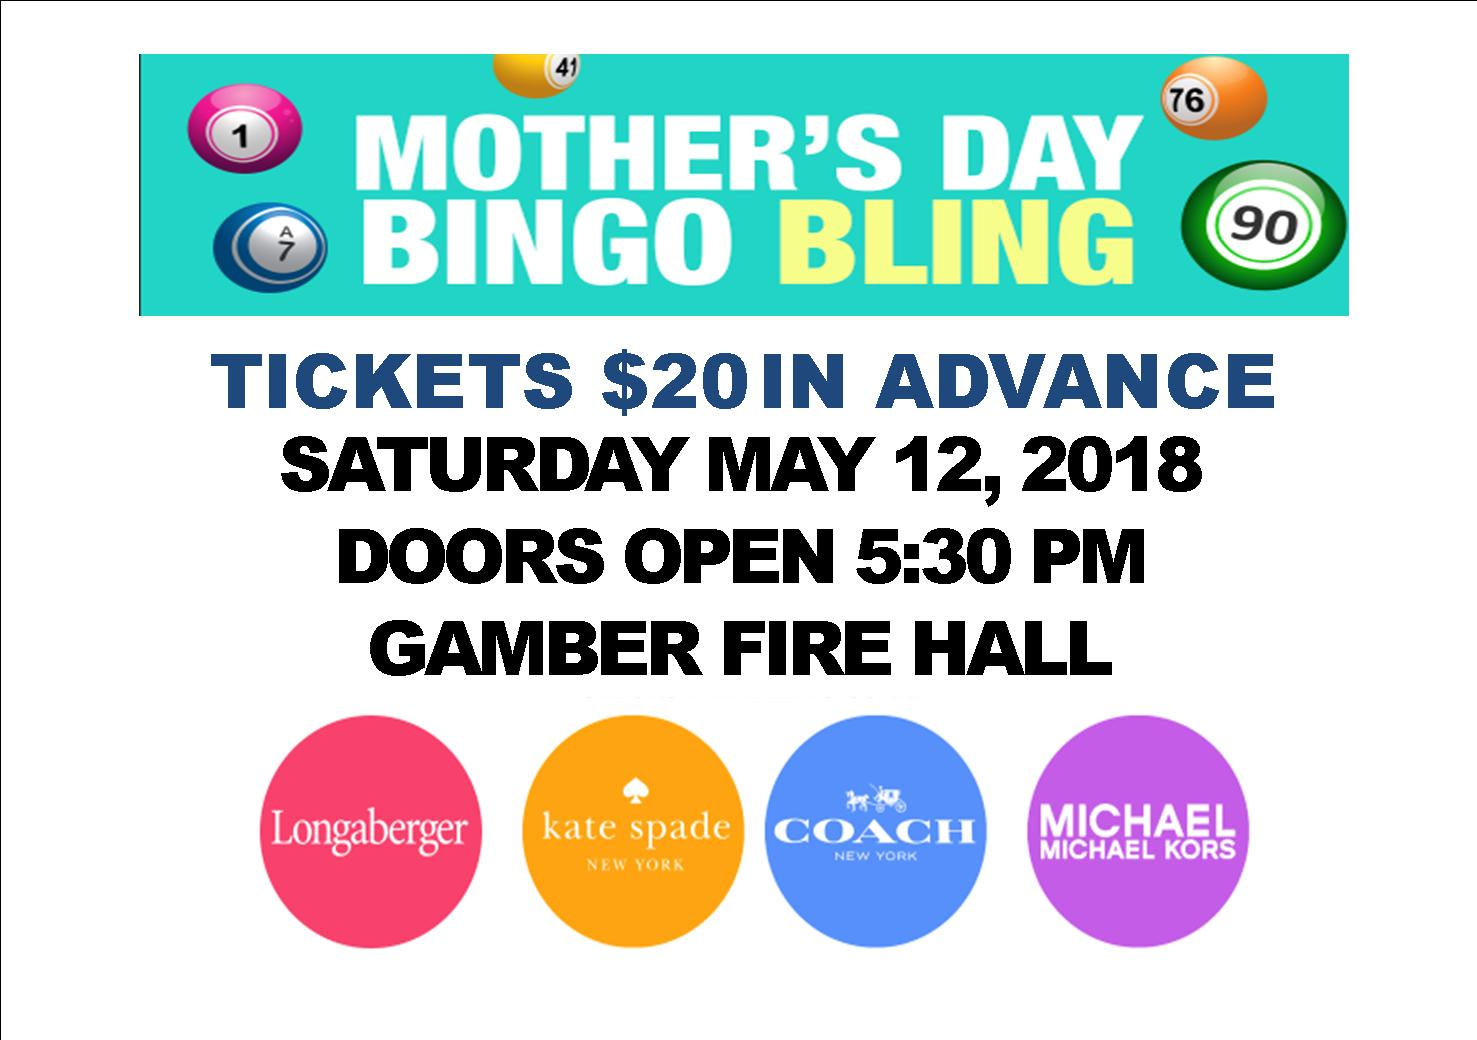 Mother's Day BINGO Bling May 12, 2018 - Tickets On Sale NOW $20 in advance.